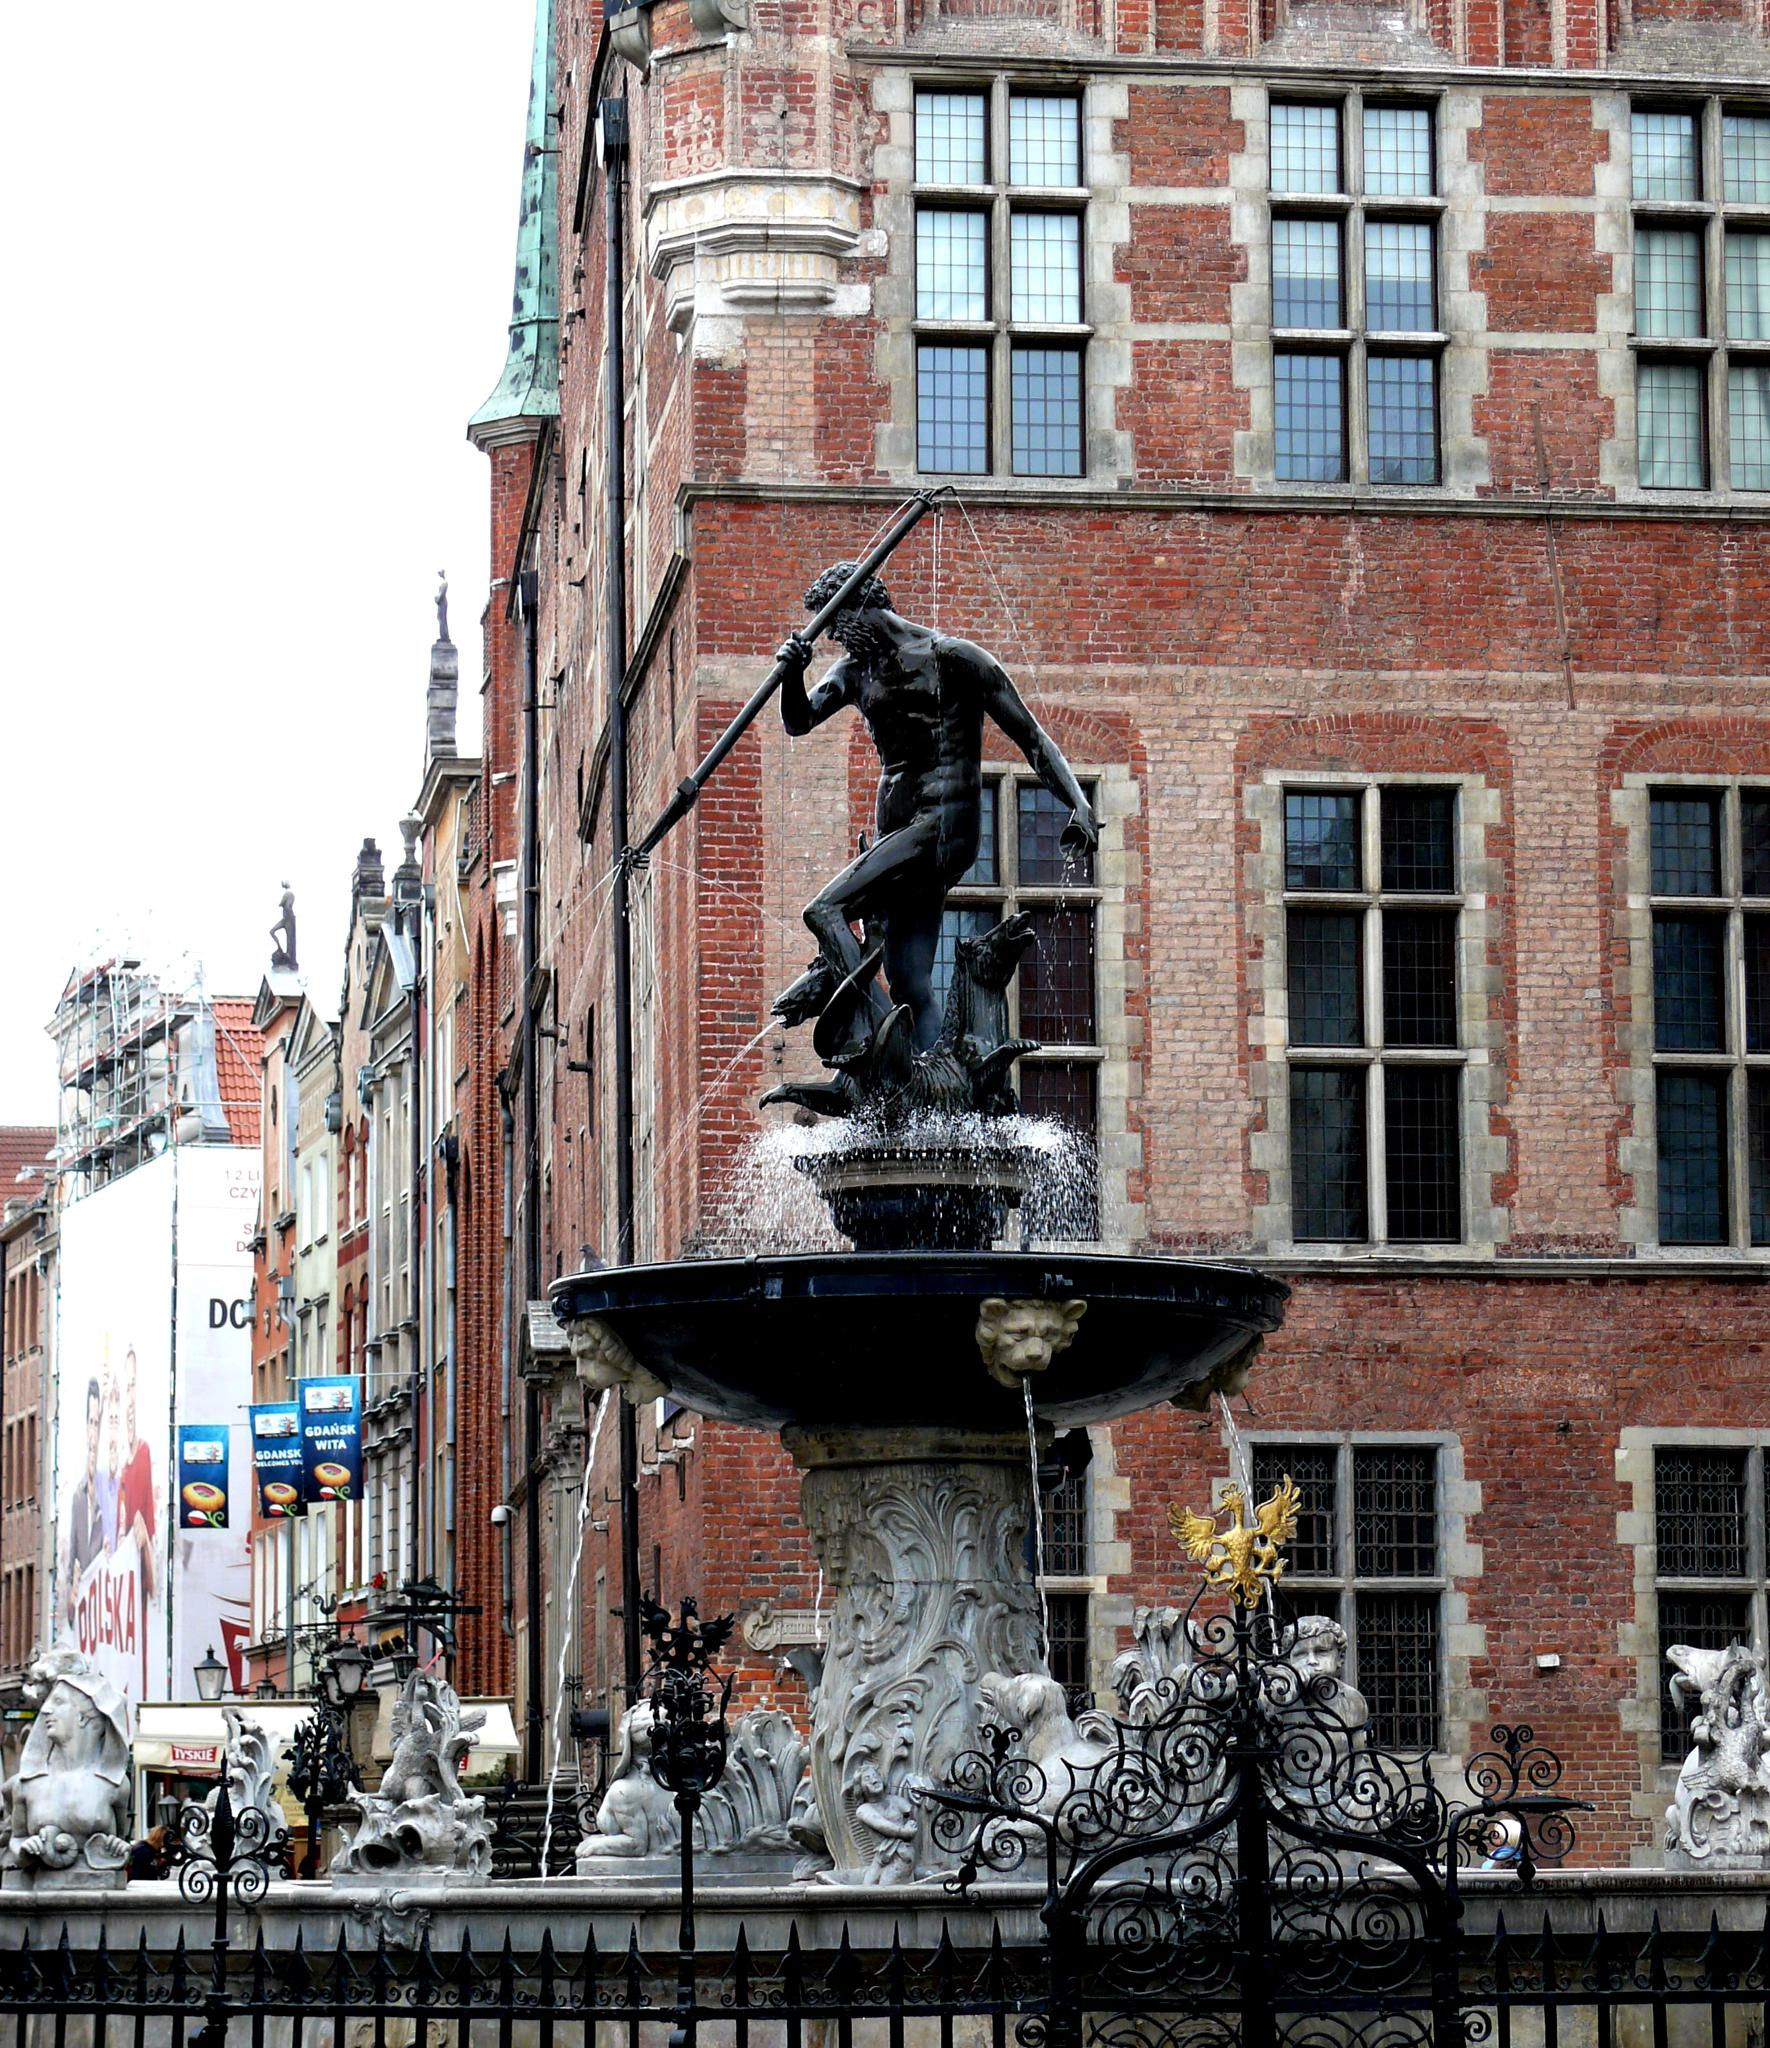 Neptune's Fountain, Gdansk, Poland by E.S.O